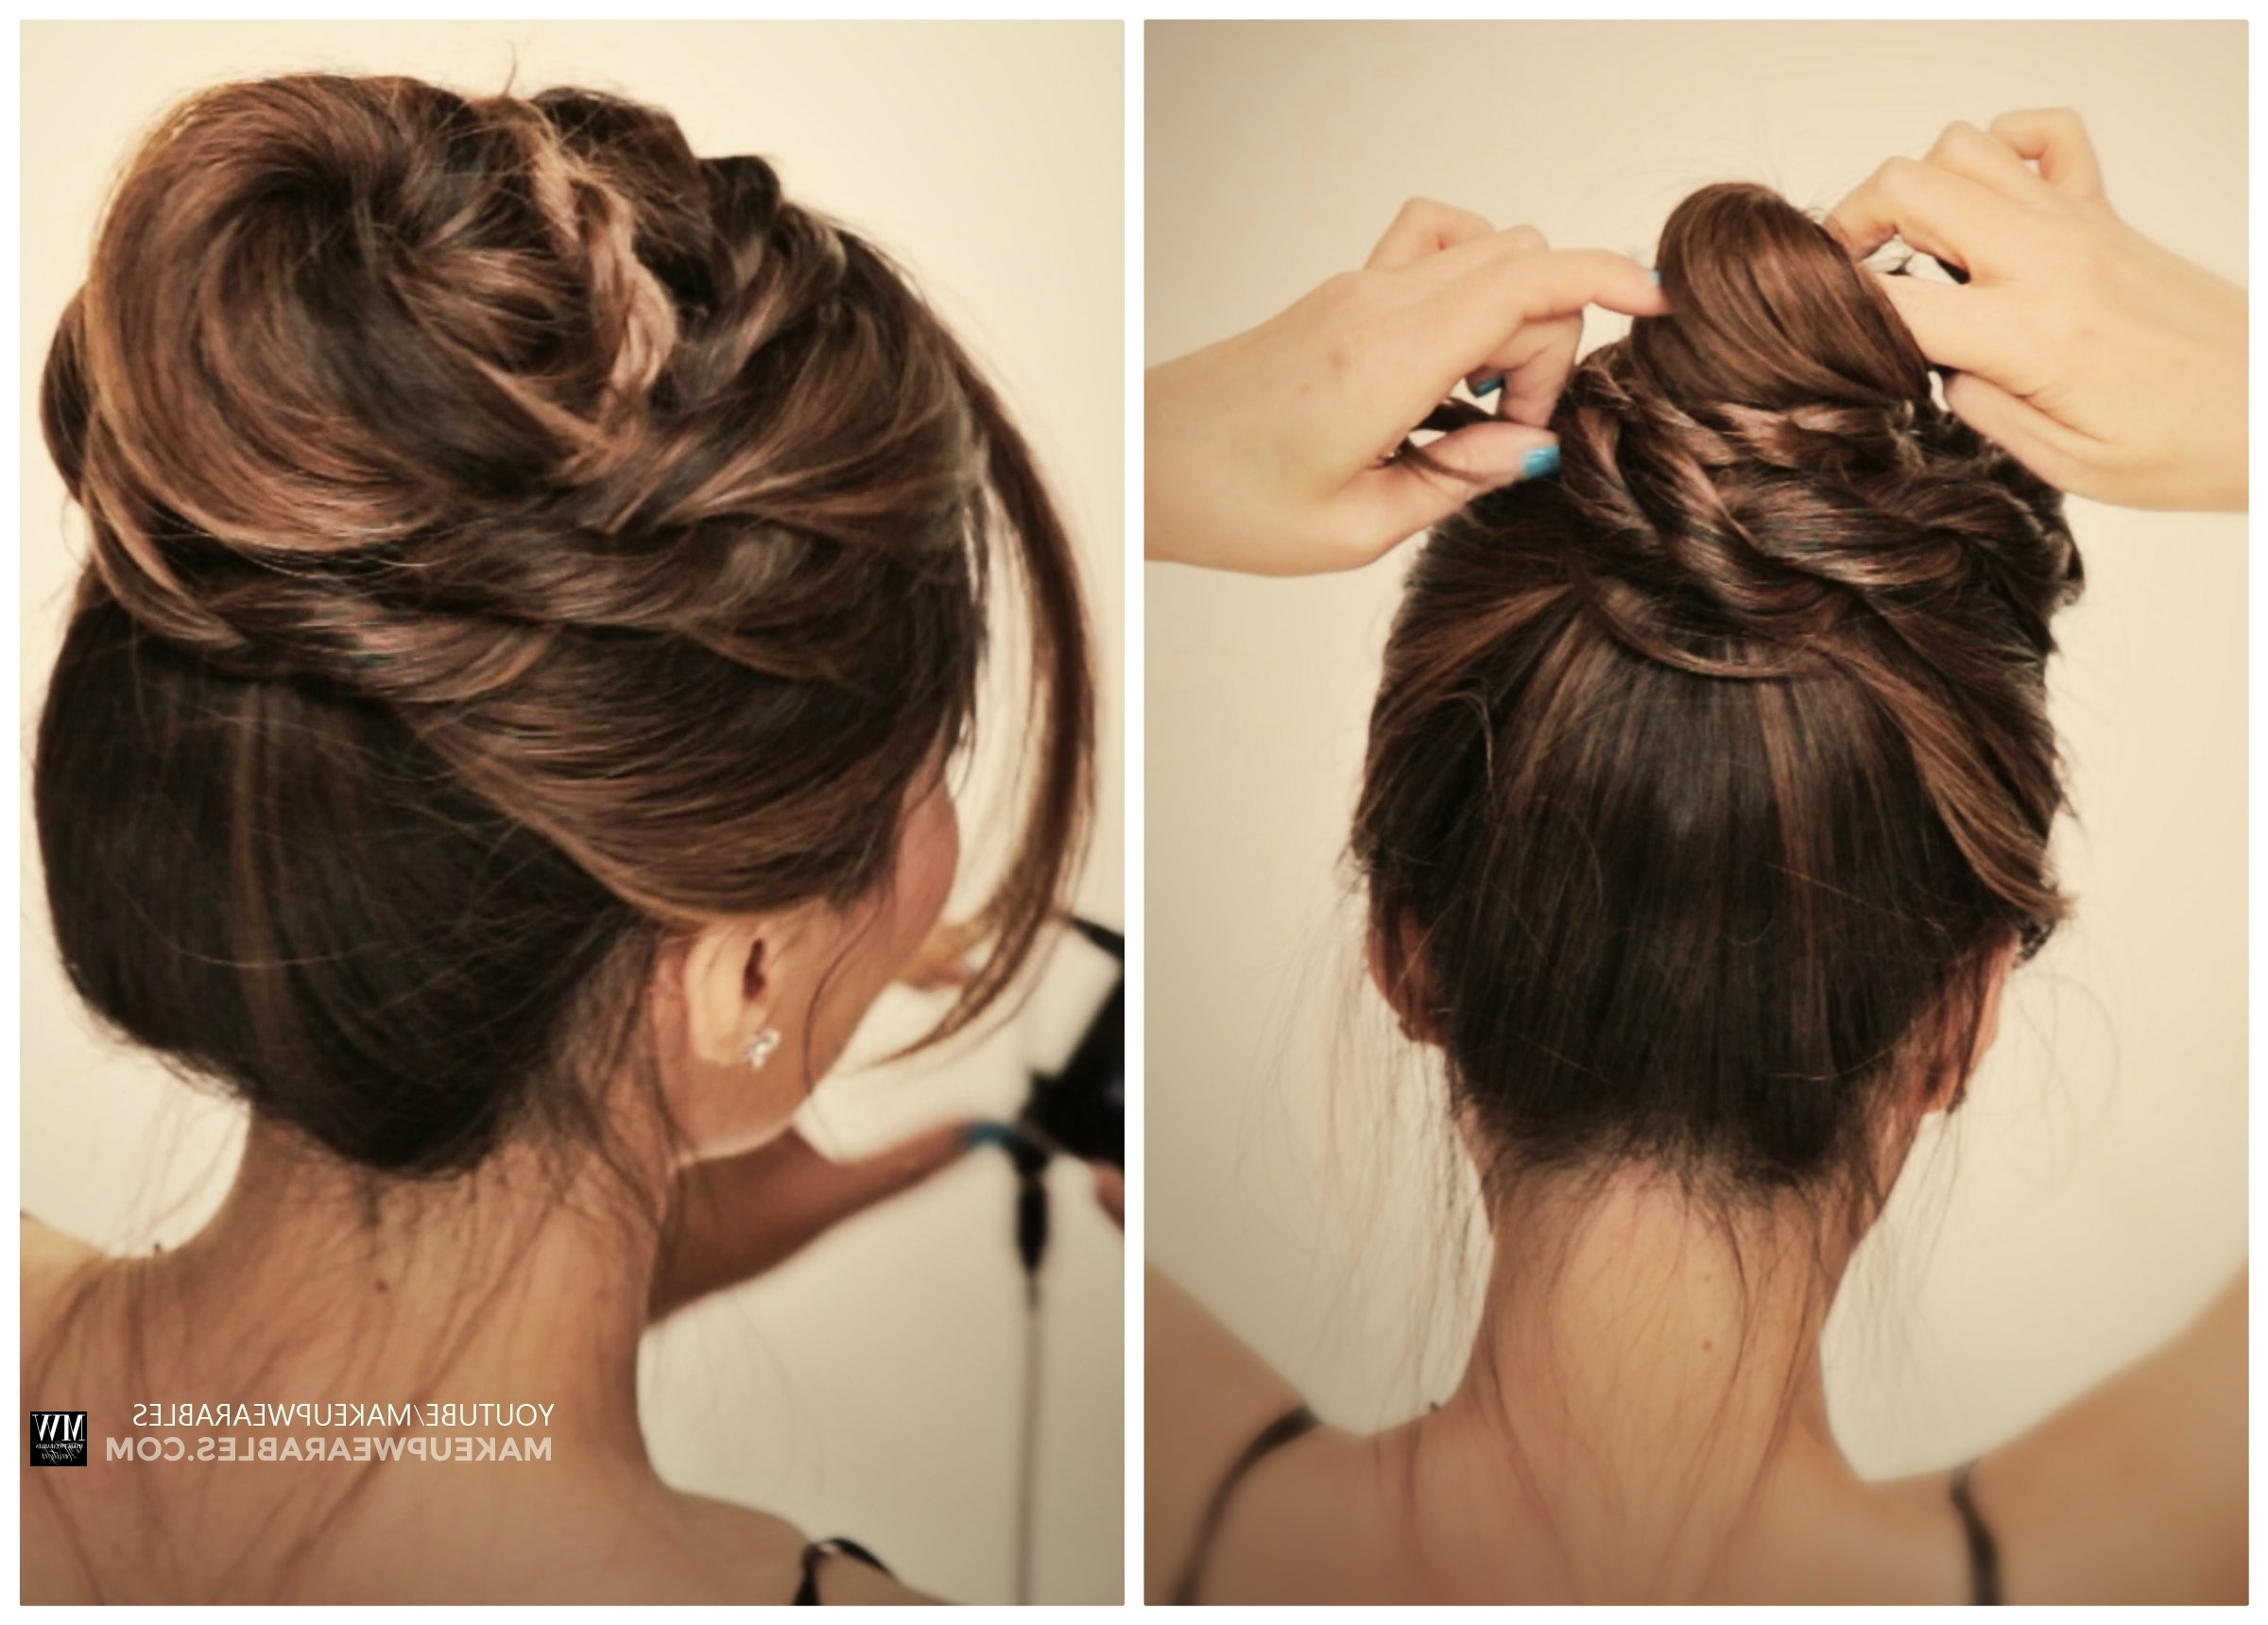 Cute Messy Bun Braids Ballerina Twisted Updo Hairstyle | Medium Hair Within Pretty Updo Hairstyles For Long Hair (View 14 of 15)